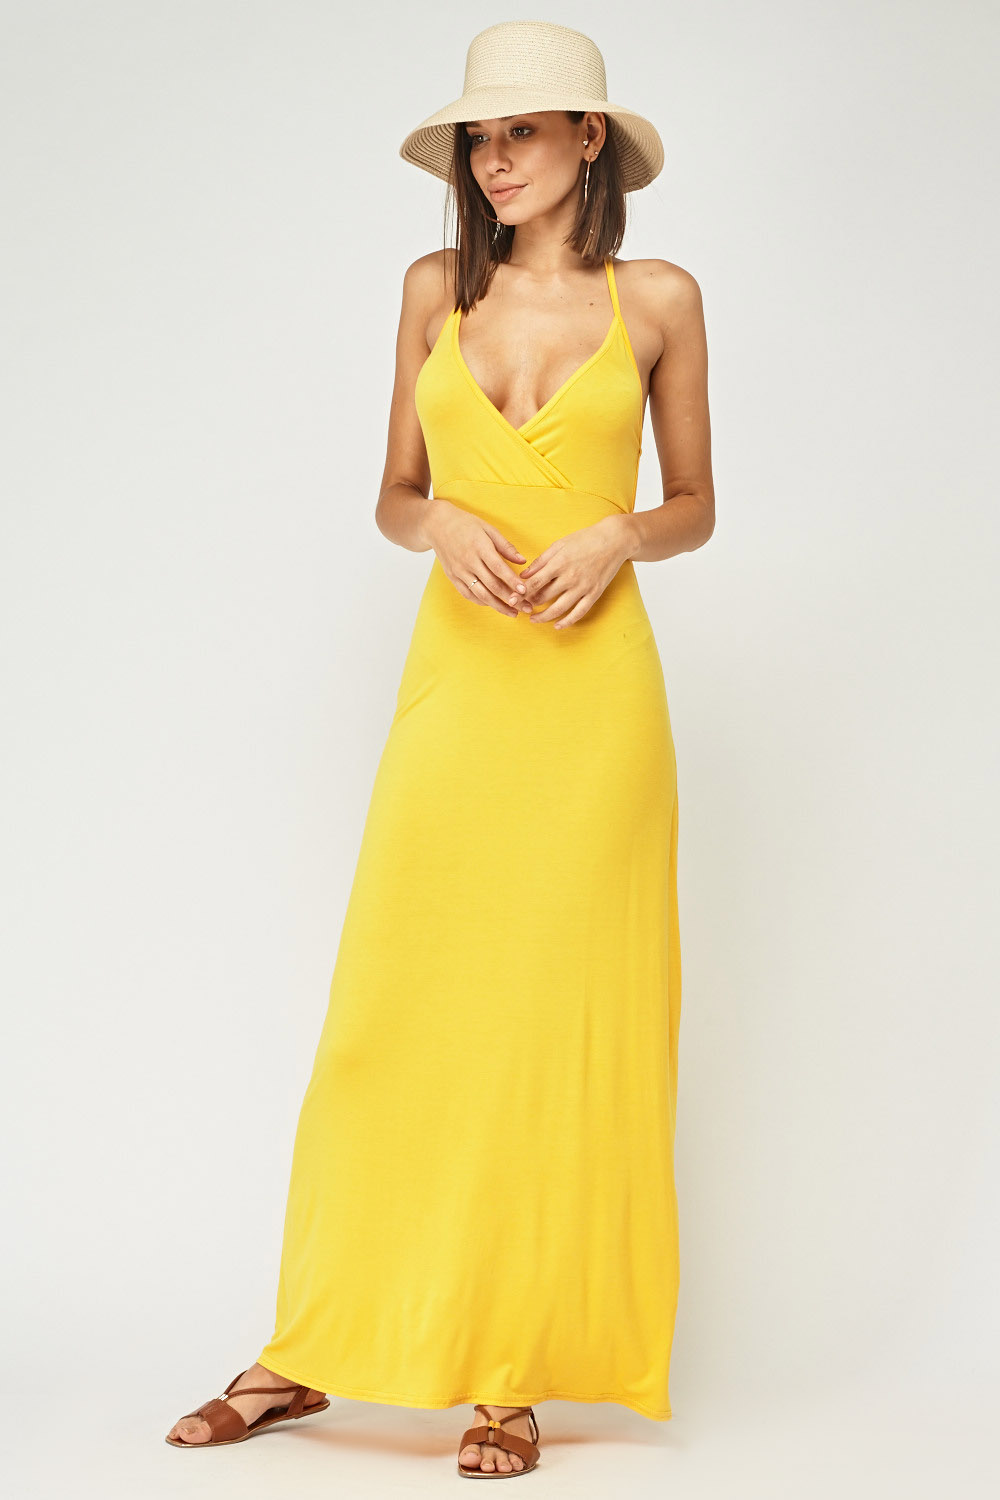 3ad502f3757 Strappy Back Yellow Maxi Dress - Just £5